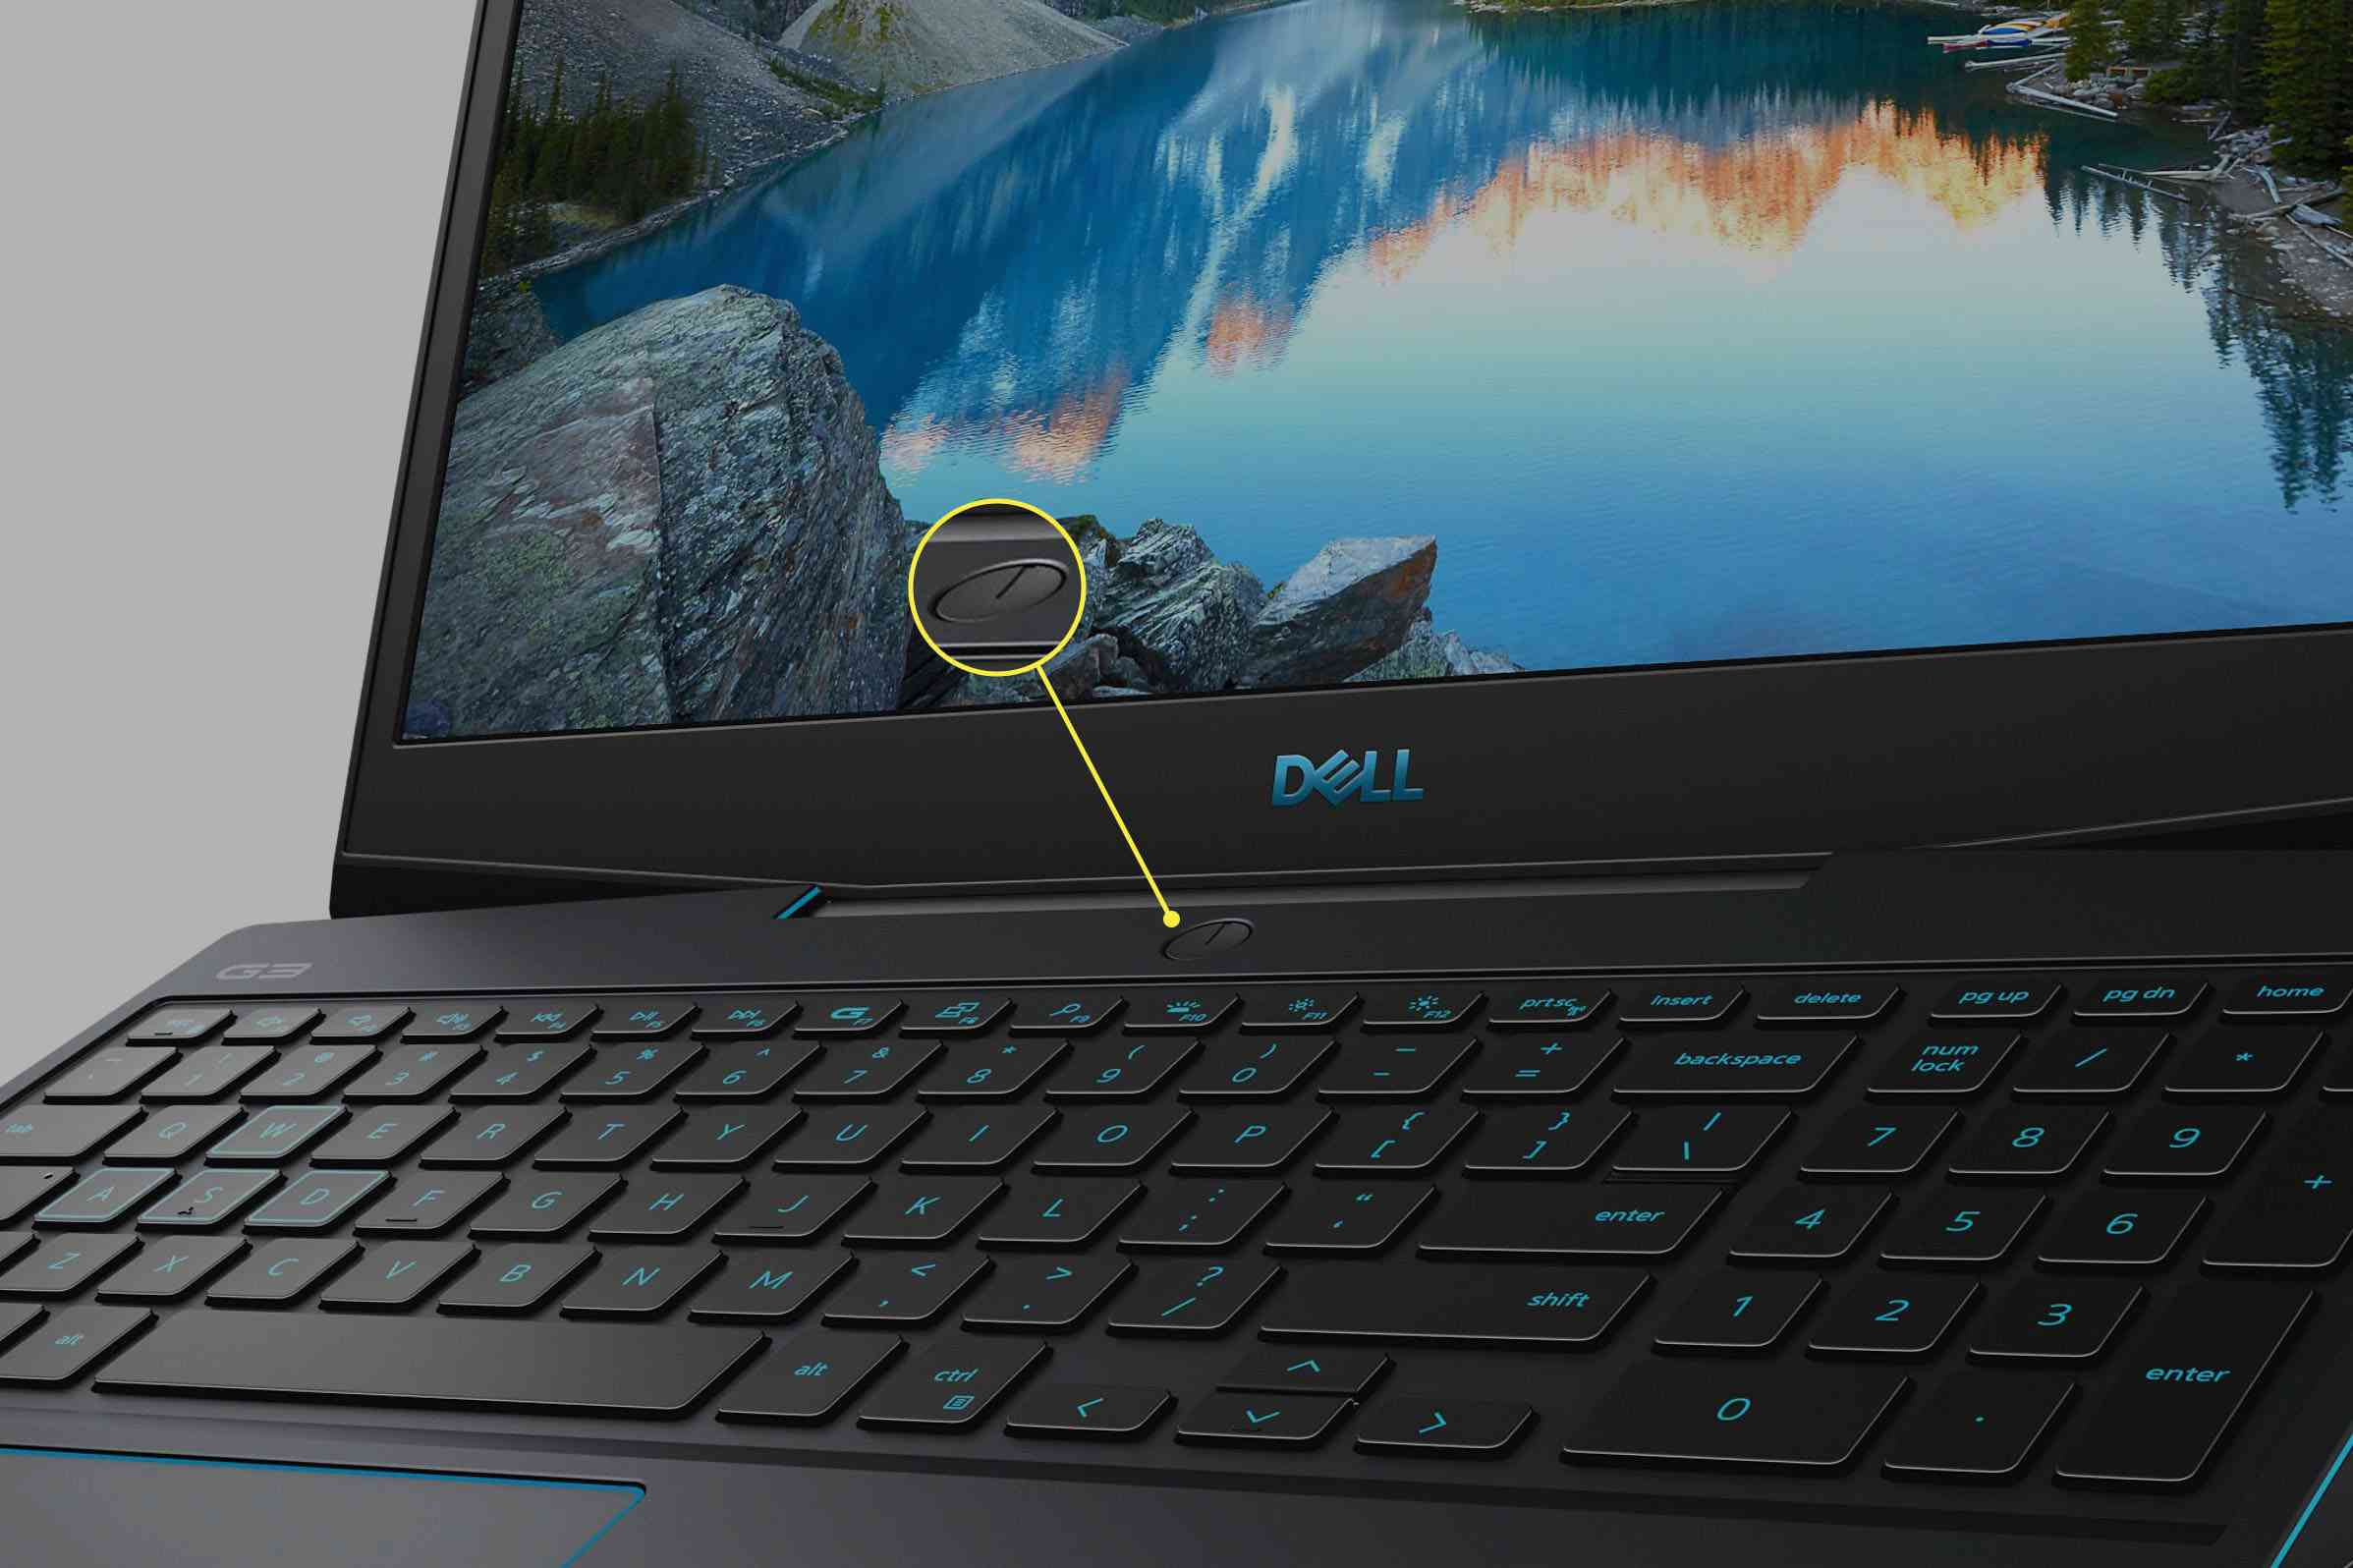 Dell G3 15 Gaming Laptop with power button highlighted.